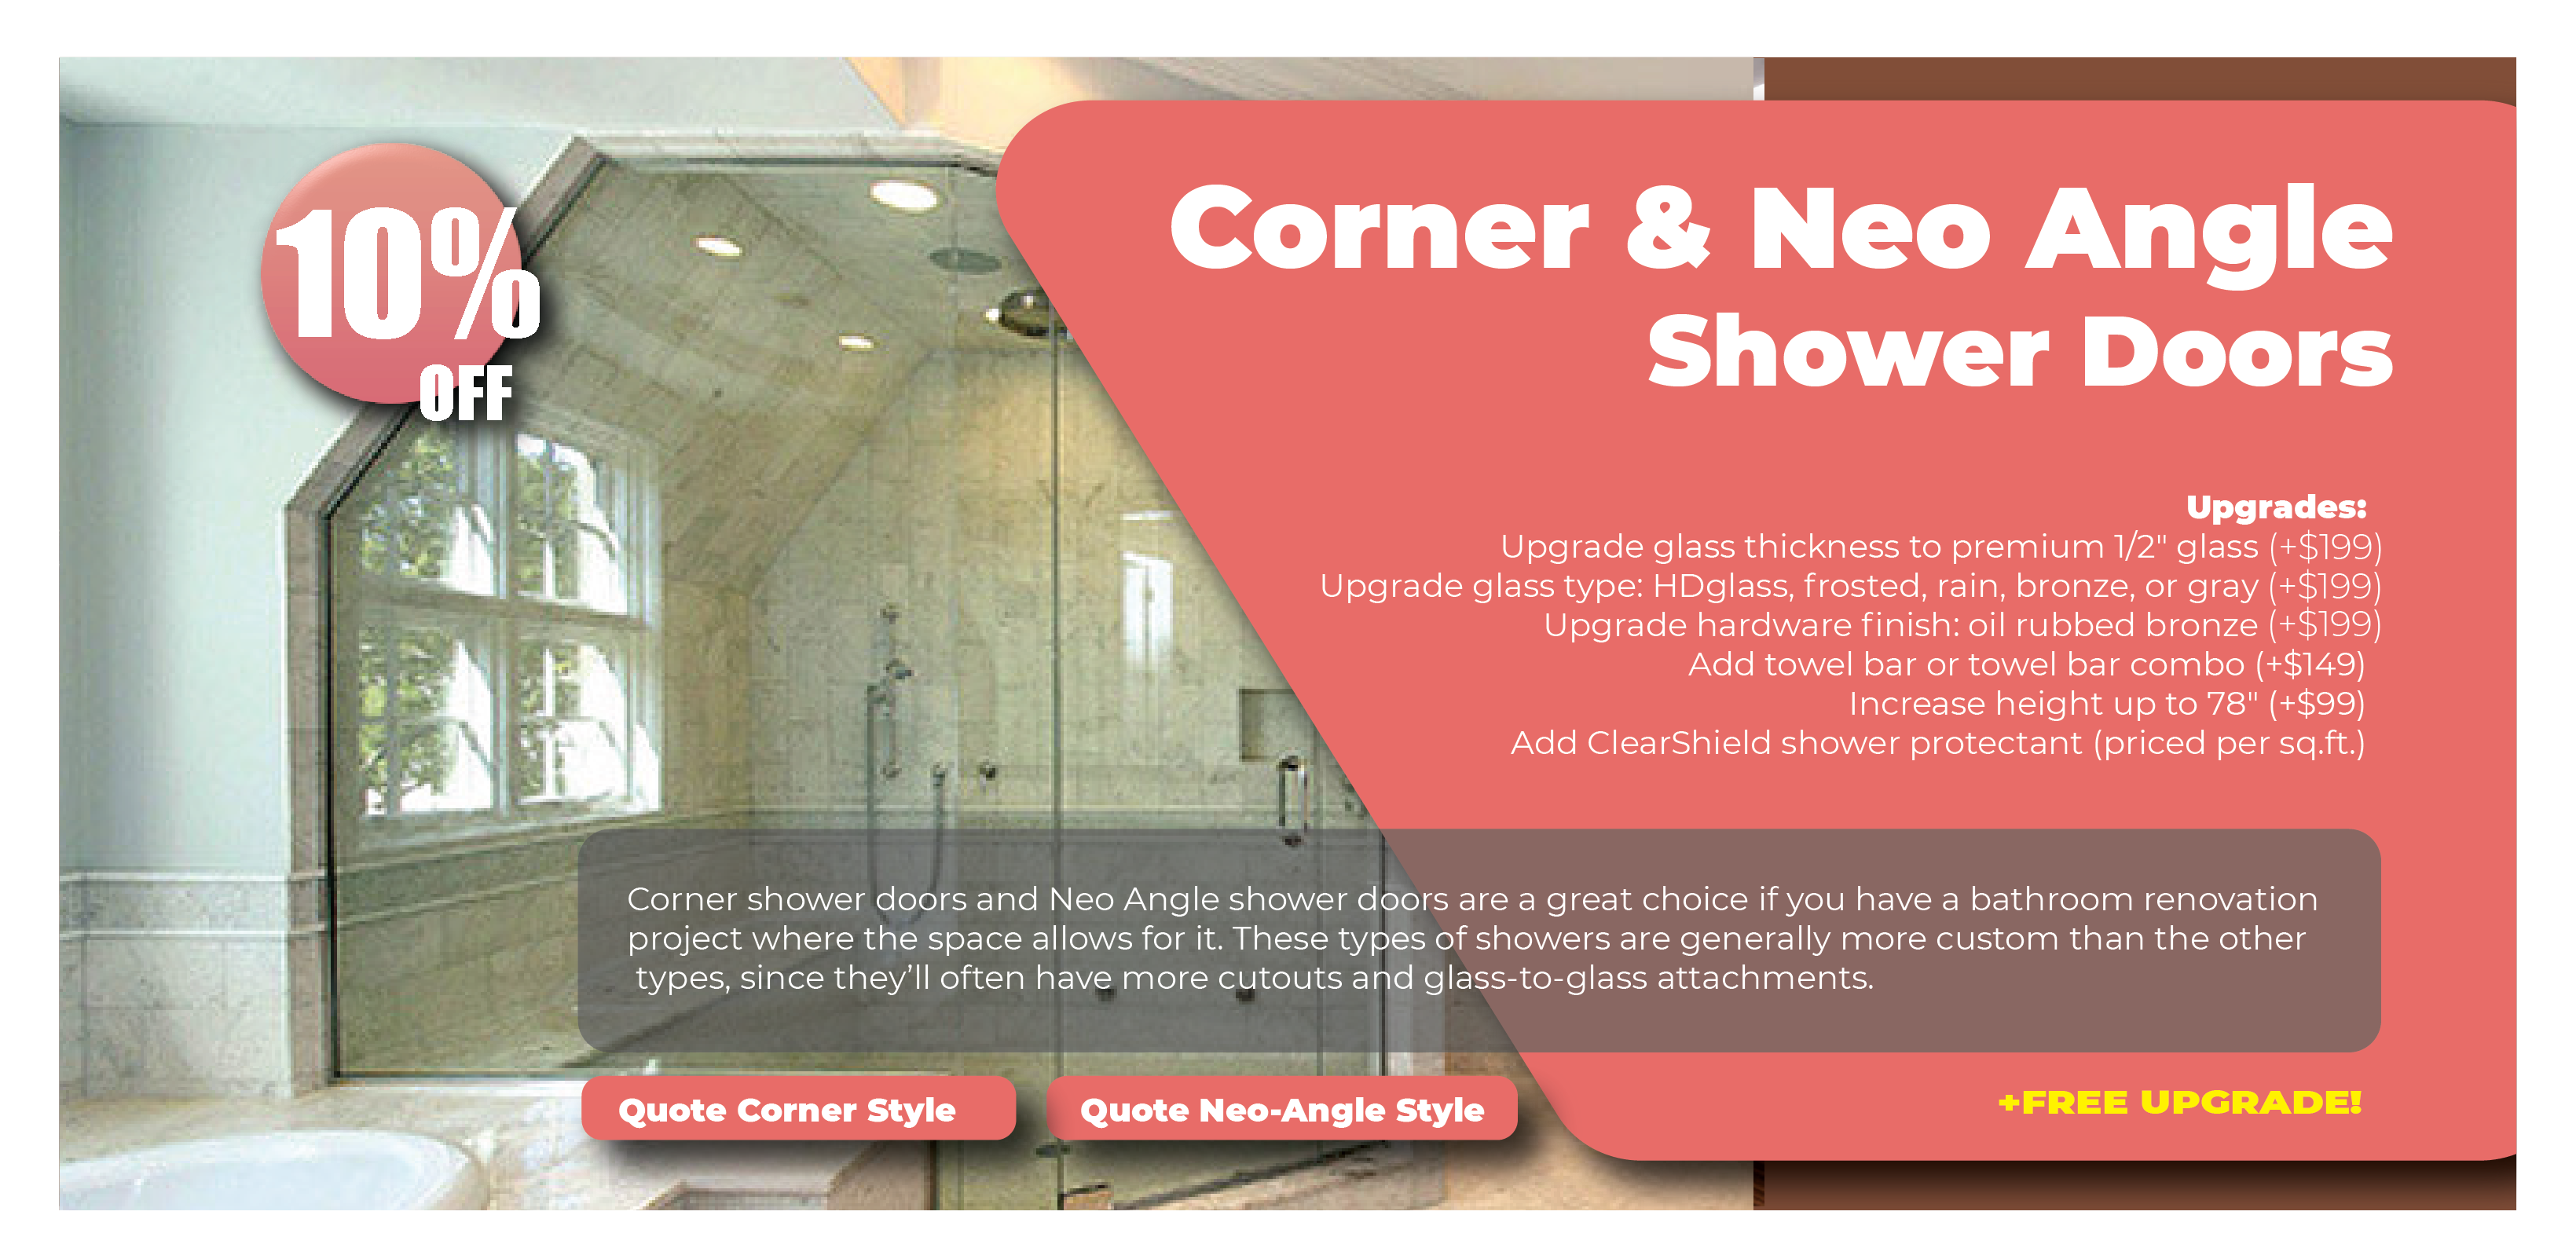 Corner and Neo Angle Shower Doors Promos